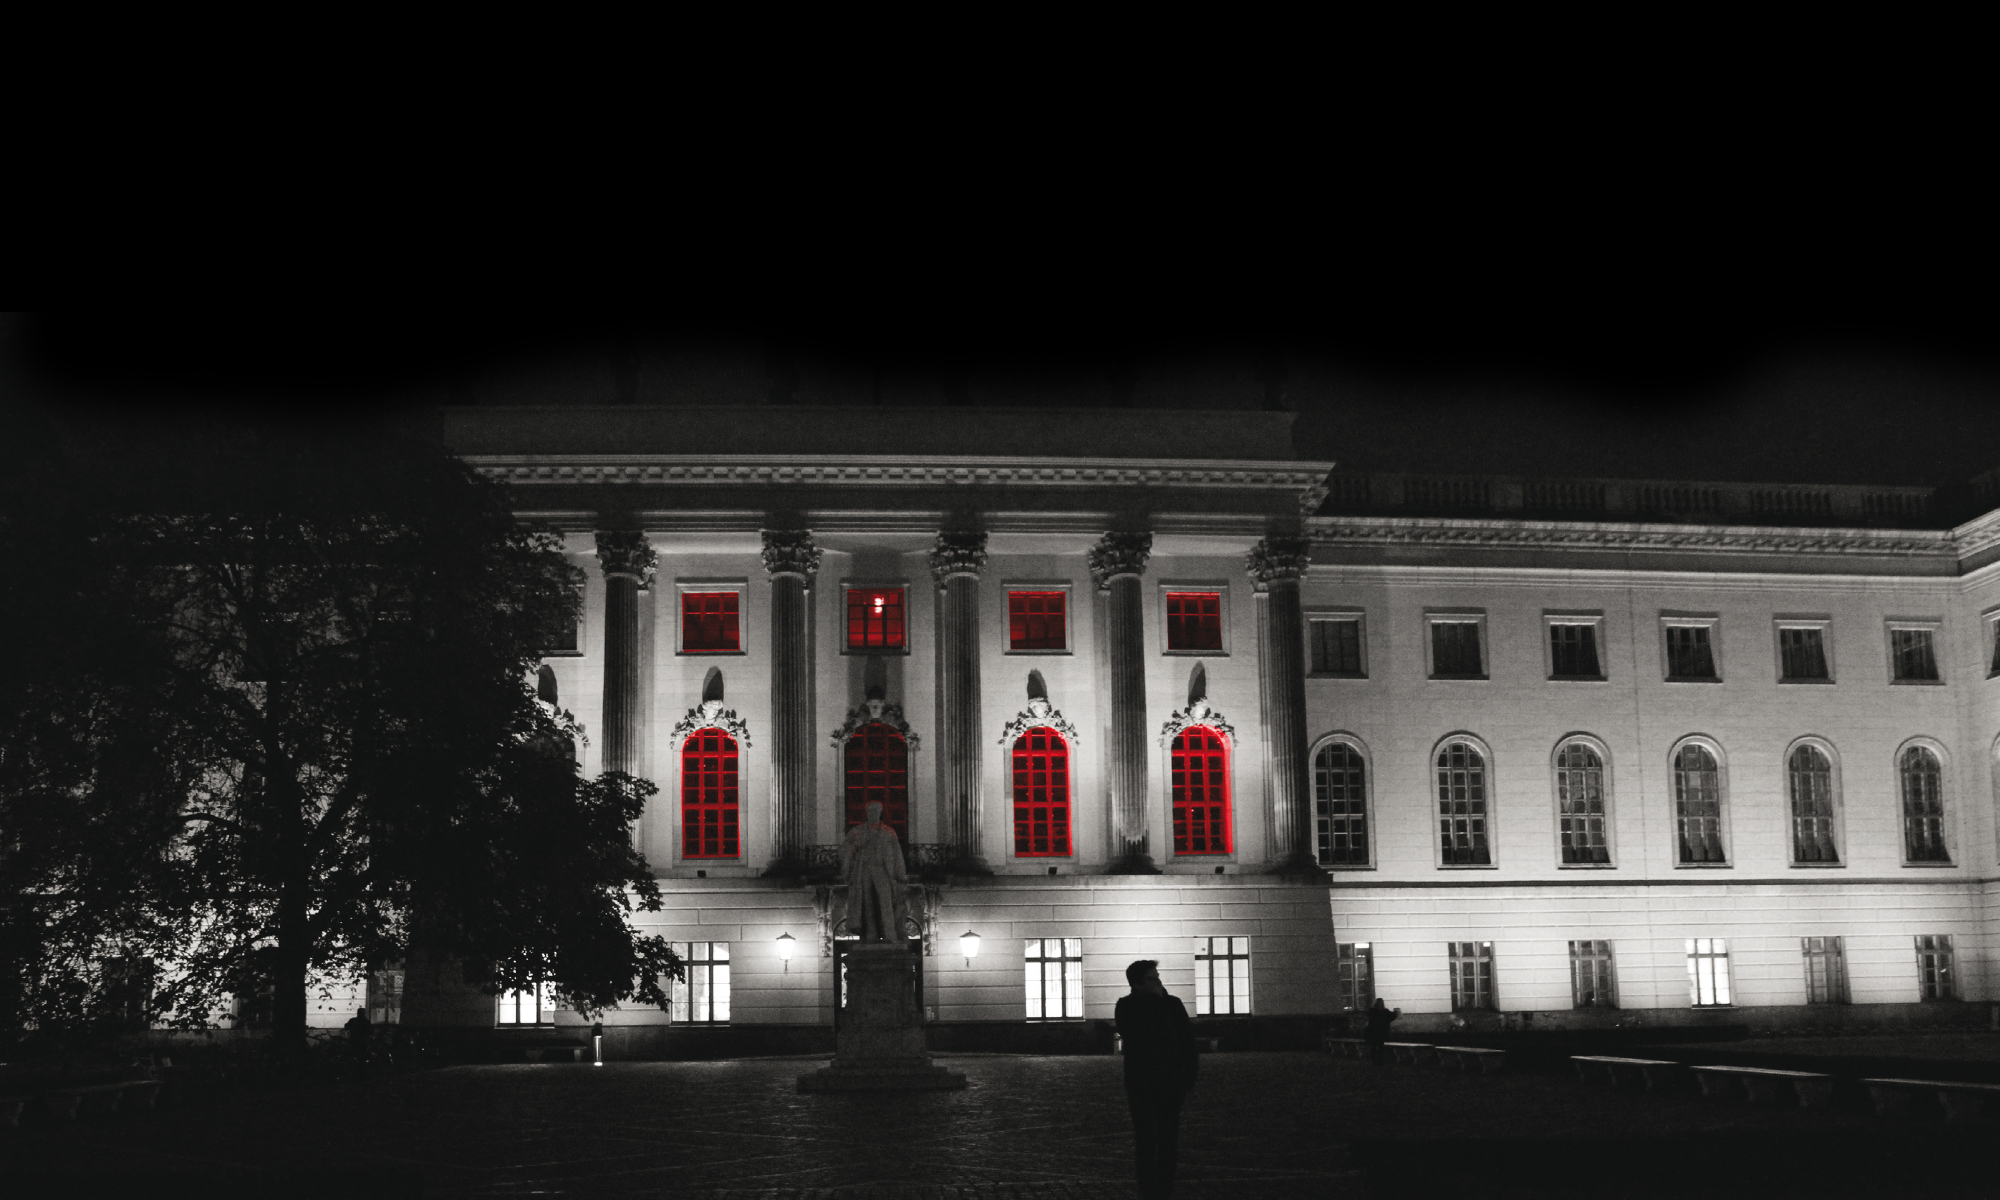 HUMBOLDT UNIVERSITY MAPPING